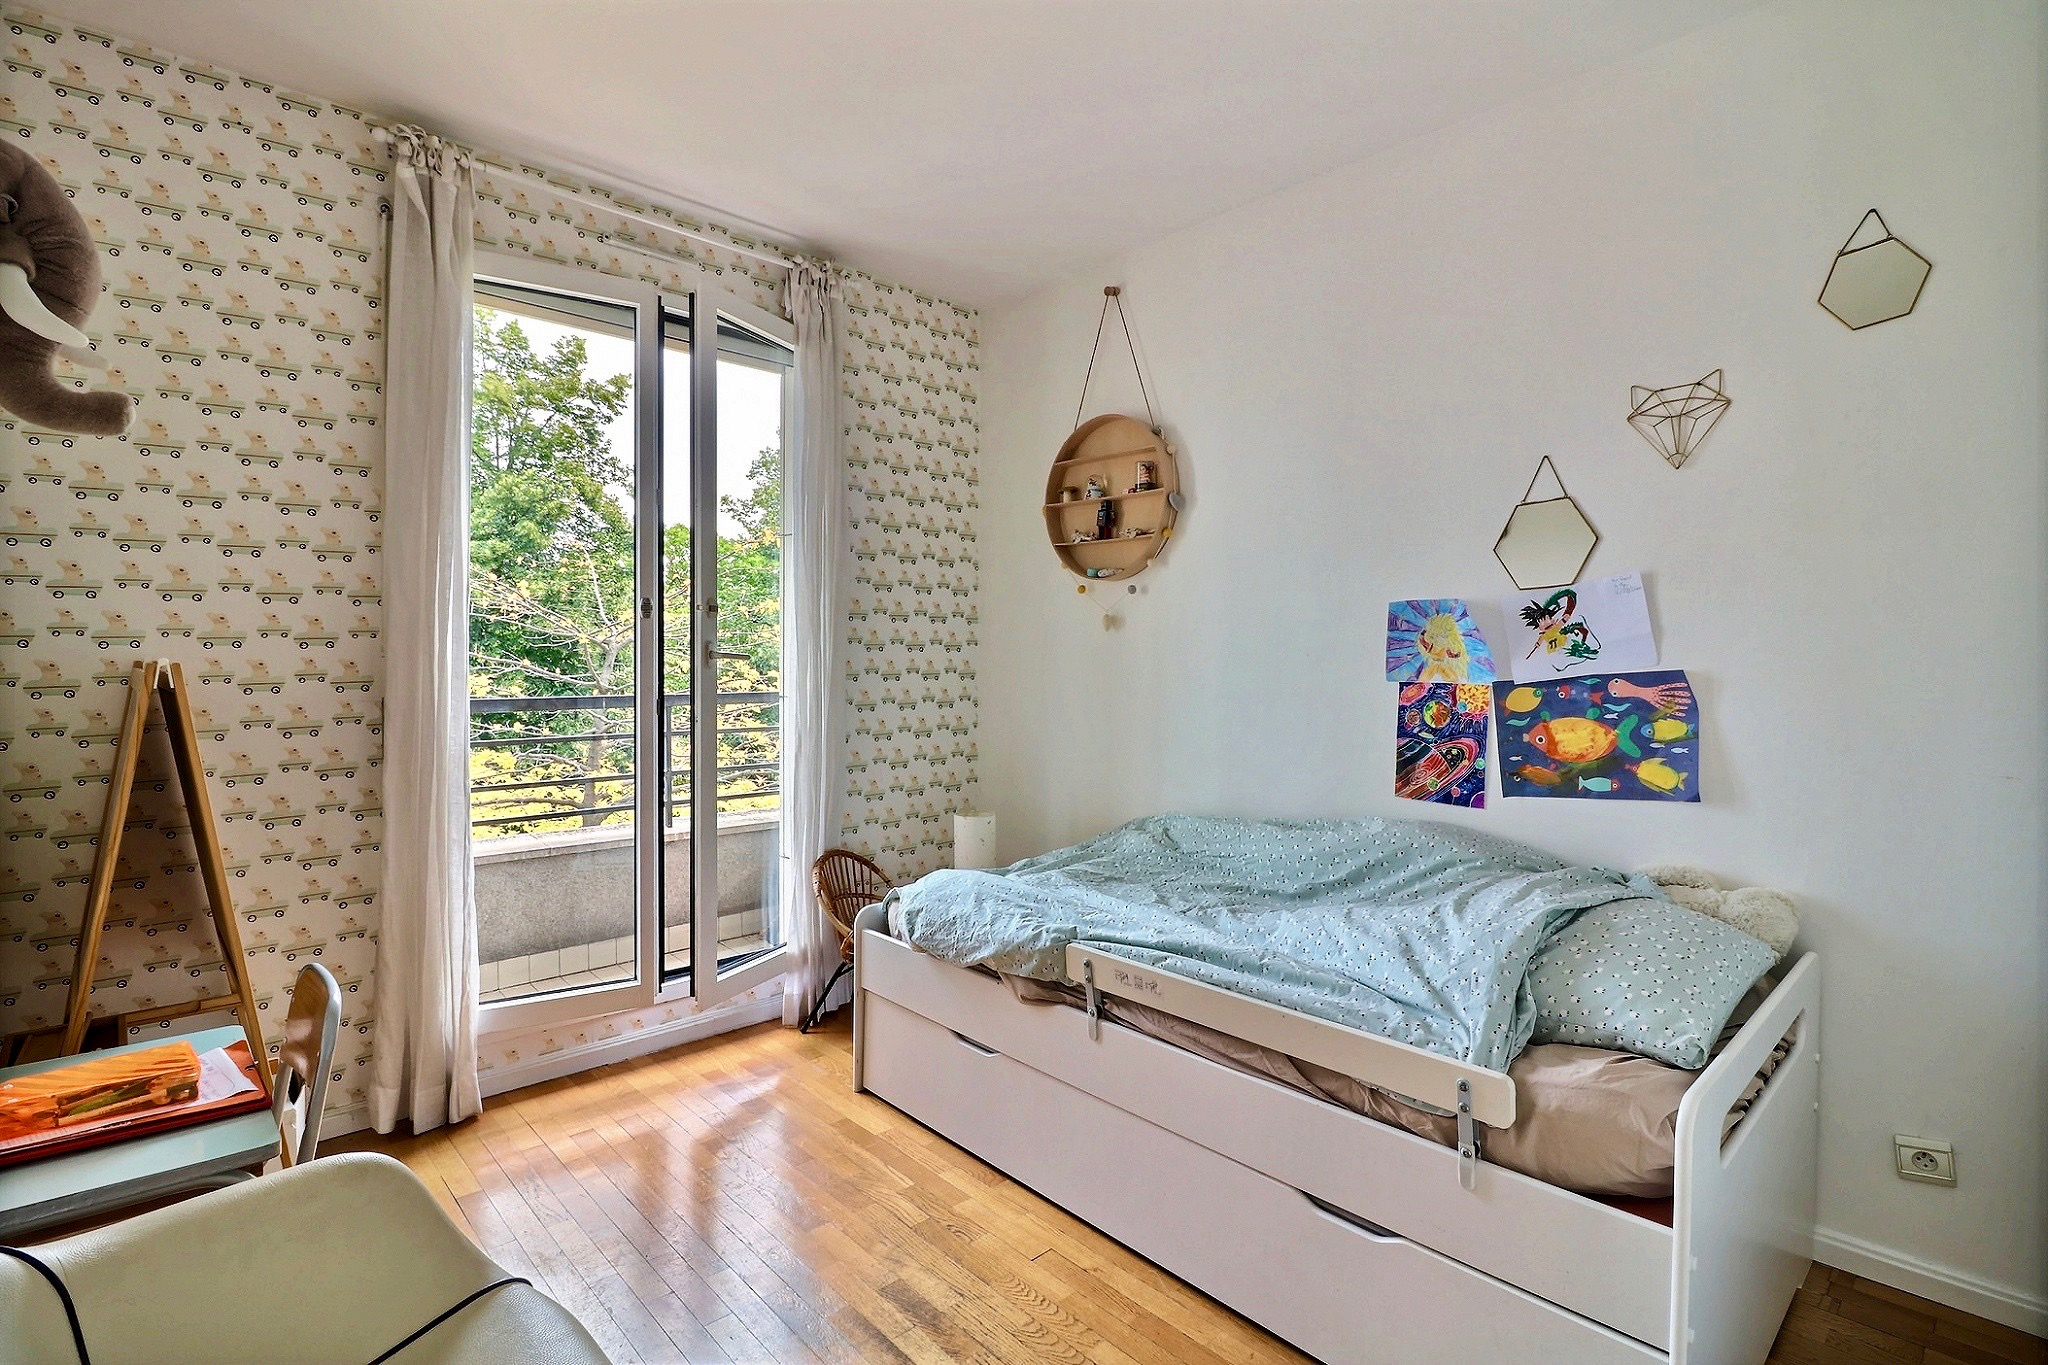 enaparte-ref153-4P-Levallois-RueRivay-photo-15